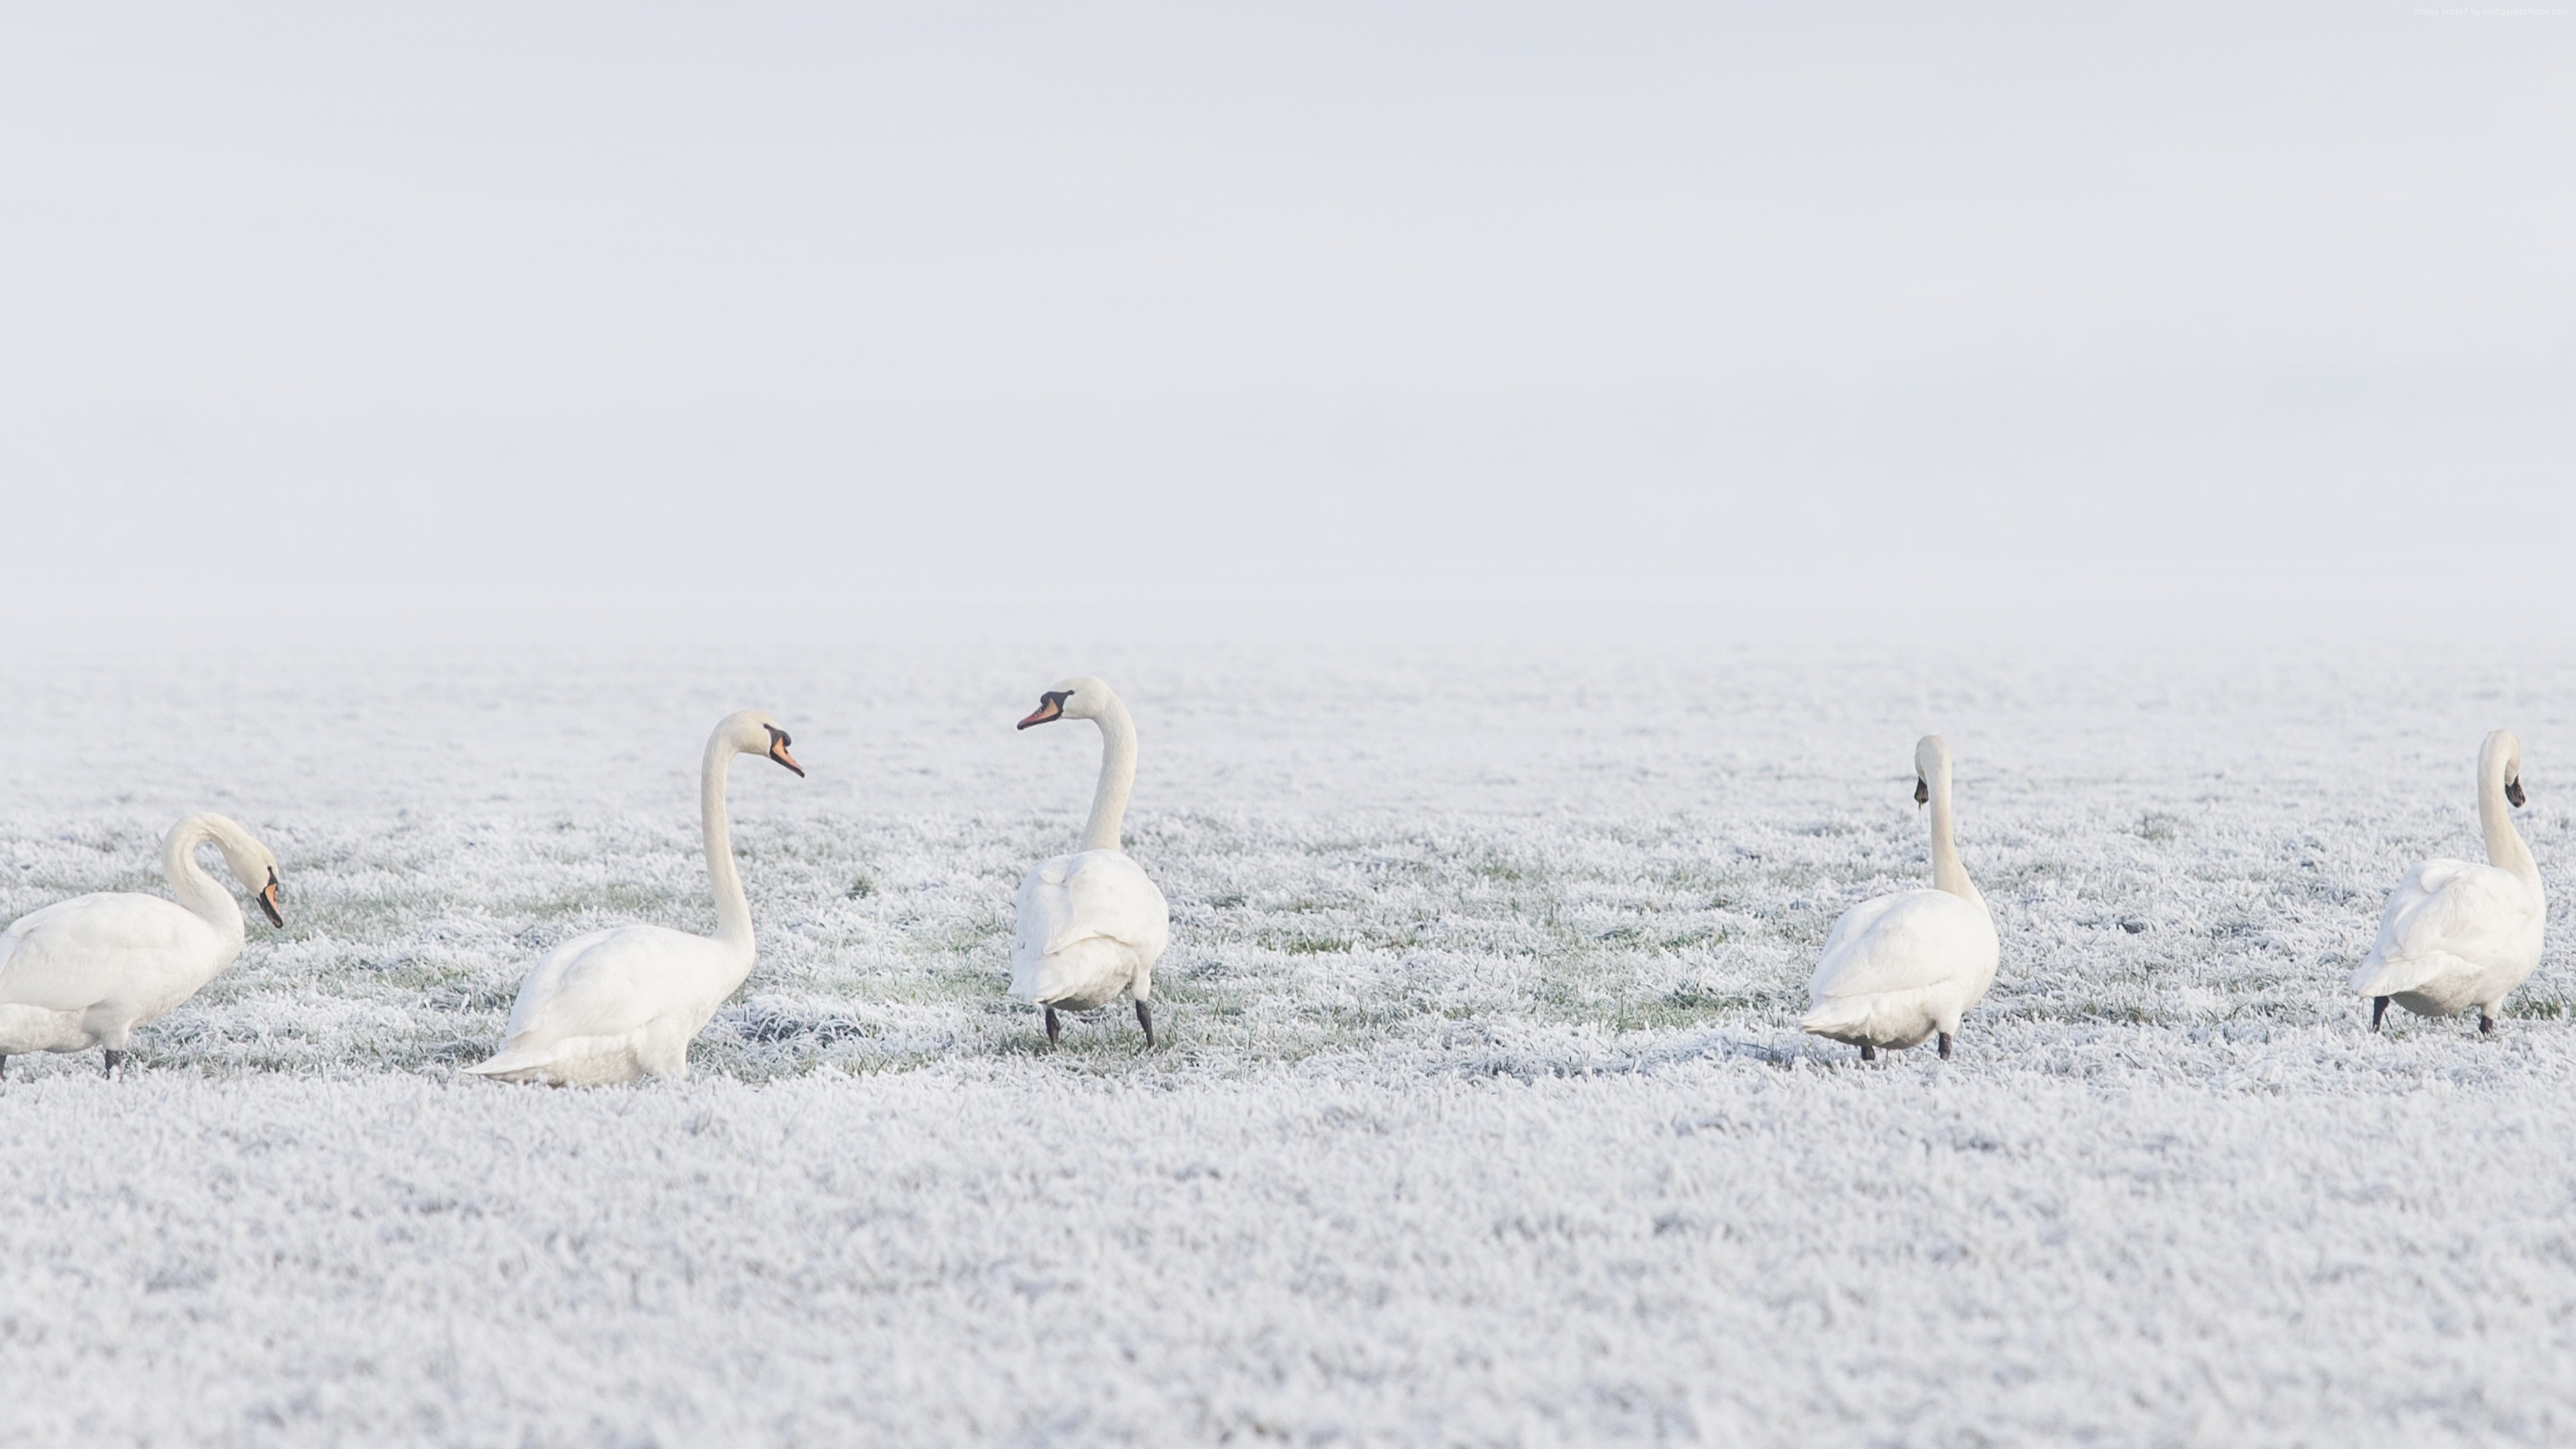 Wallpaper winter, swans, snow, 8k, Animals